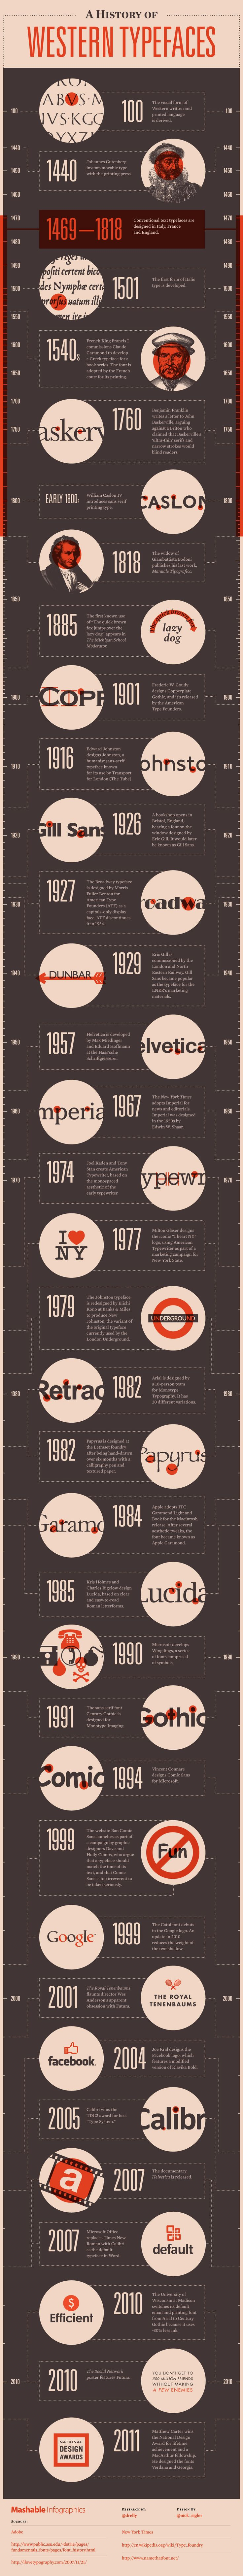 History of Western Typefaces.